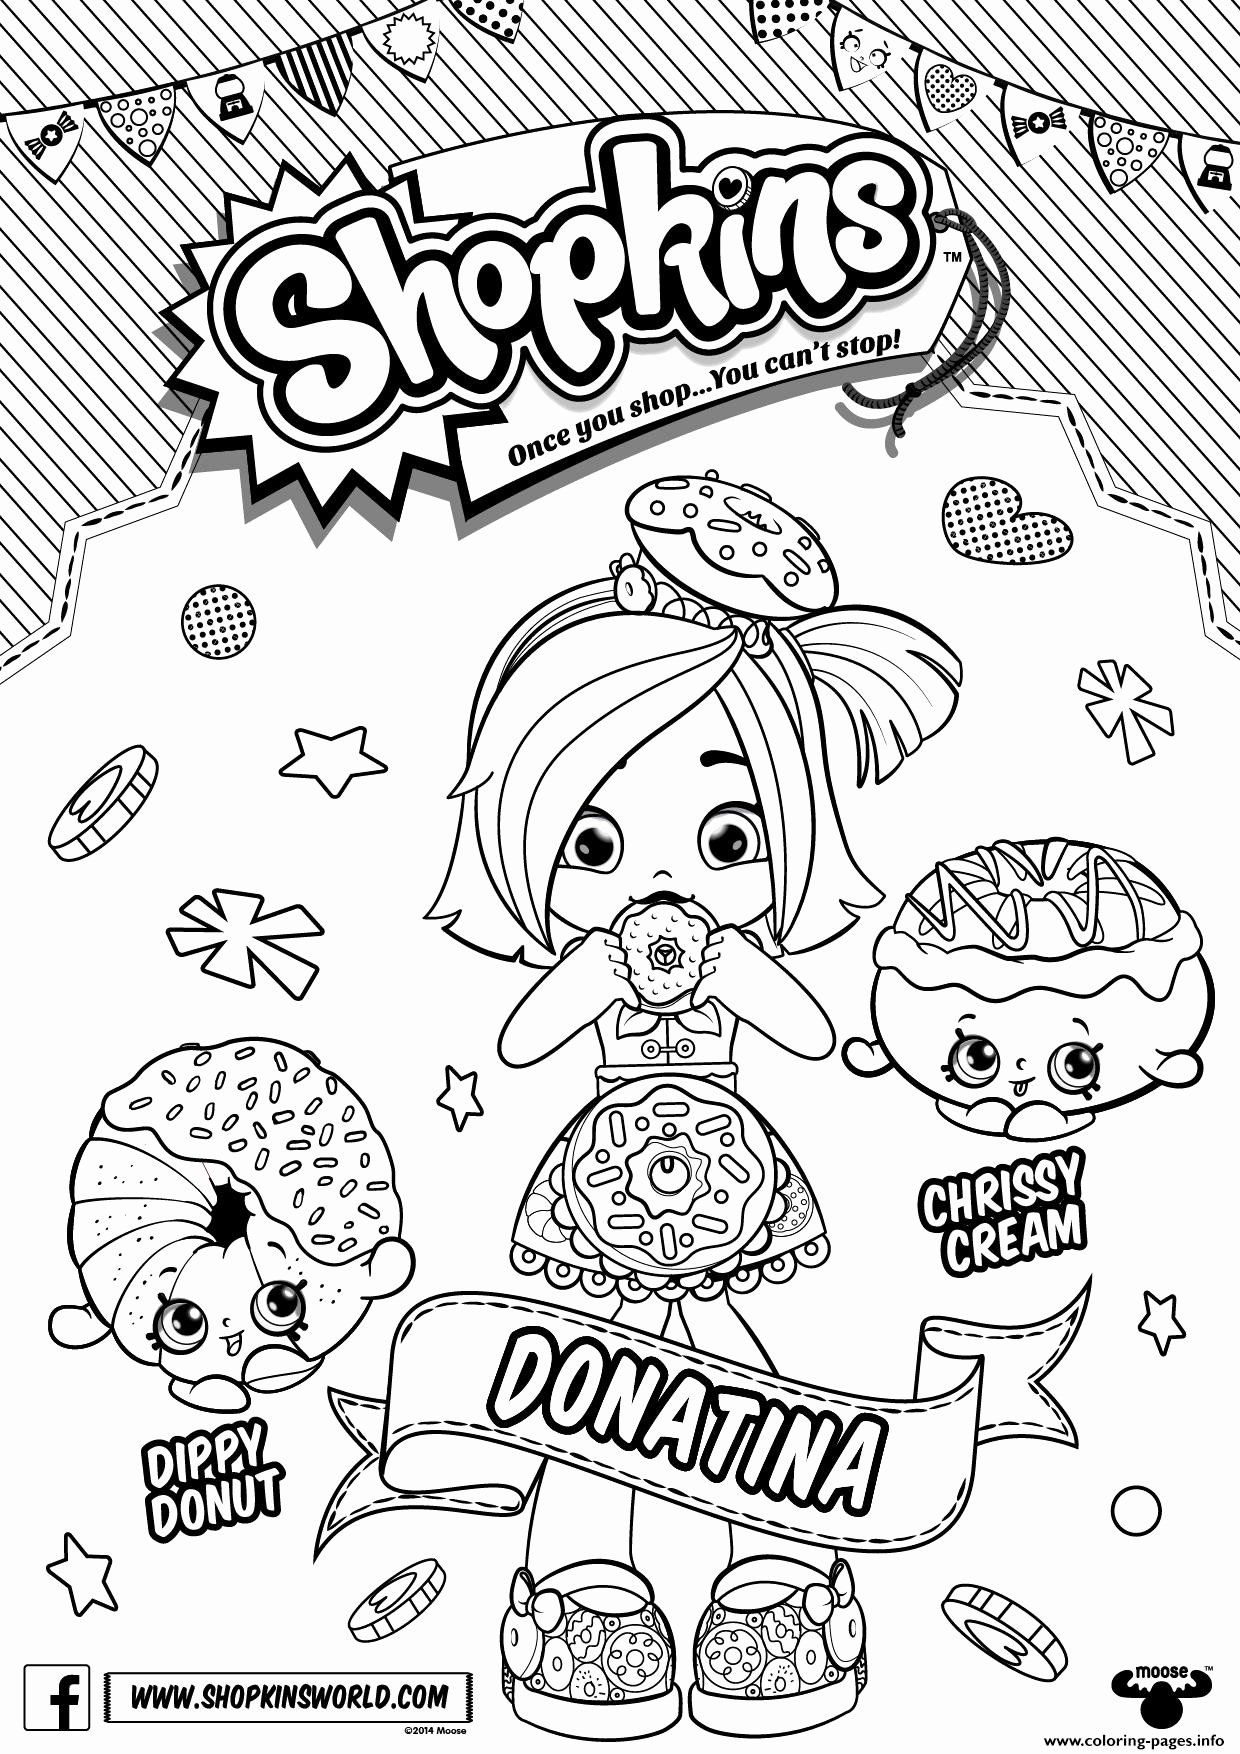 Christmas Shopkins Coloring Pages Awesome Open Season Coloring Pages